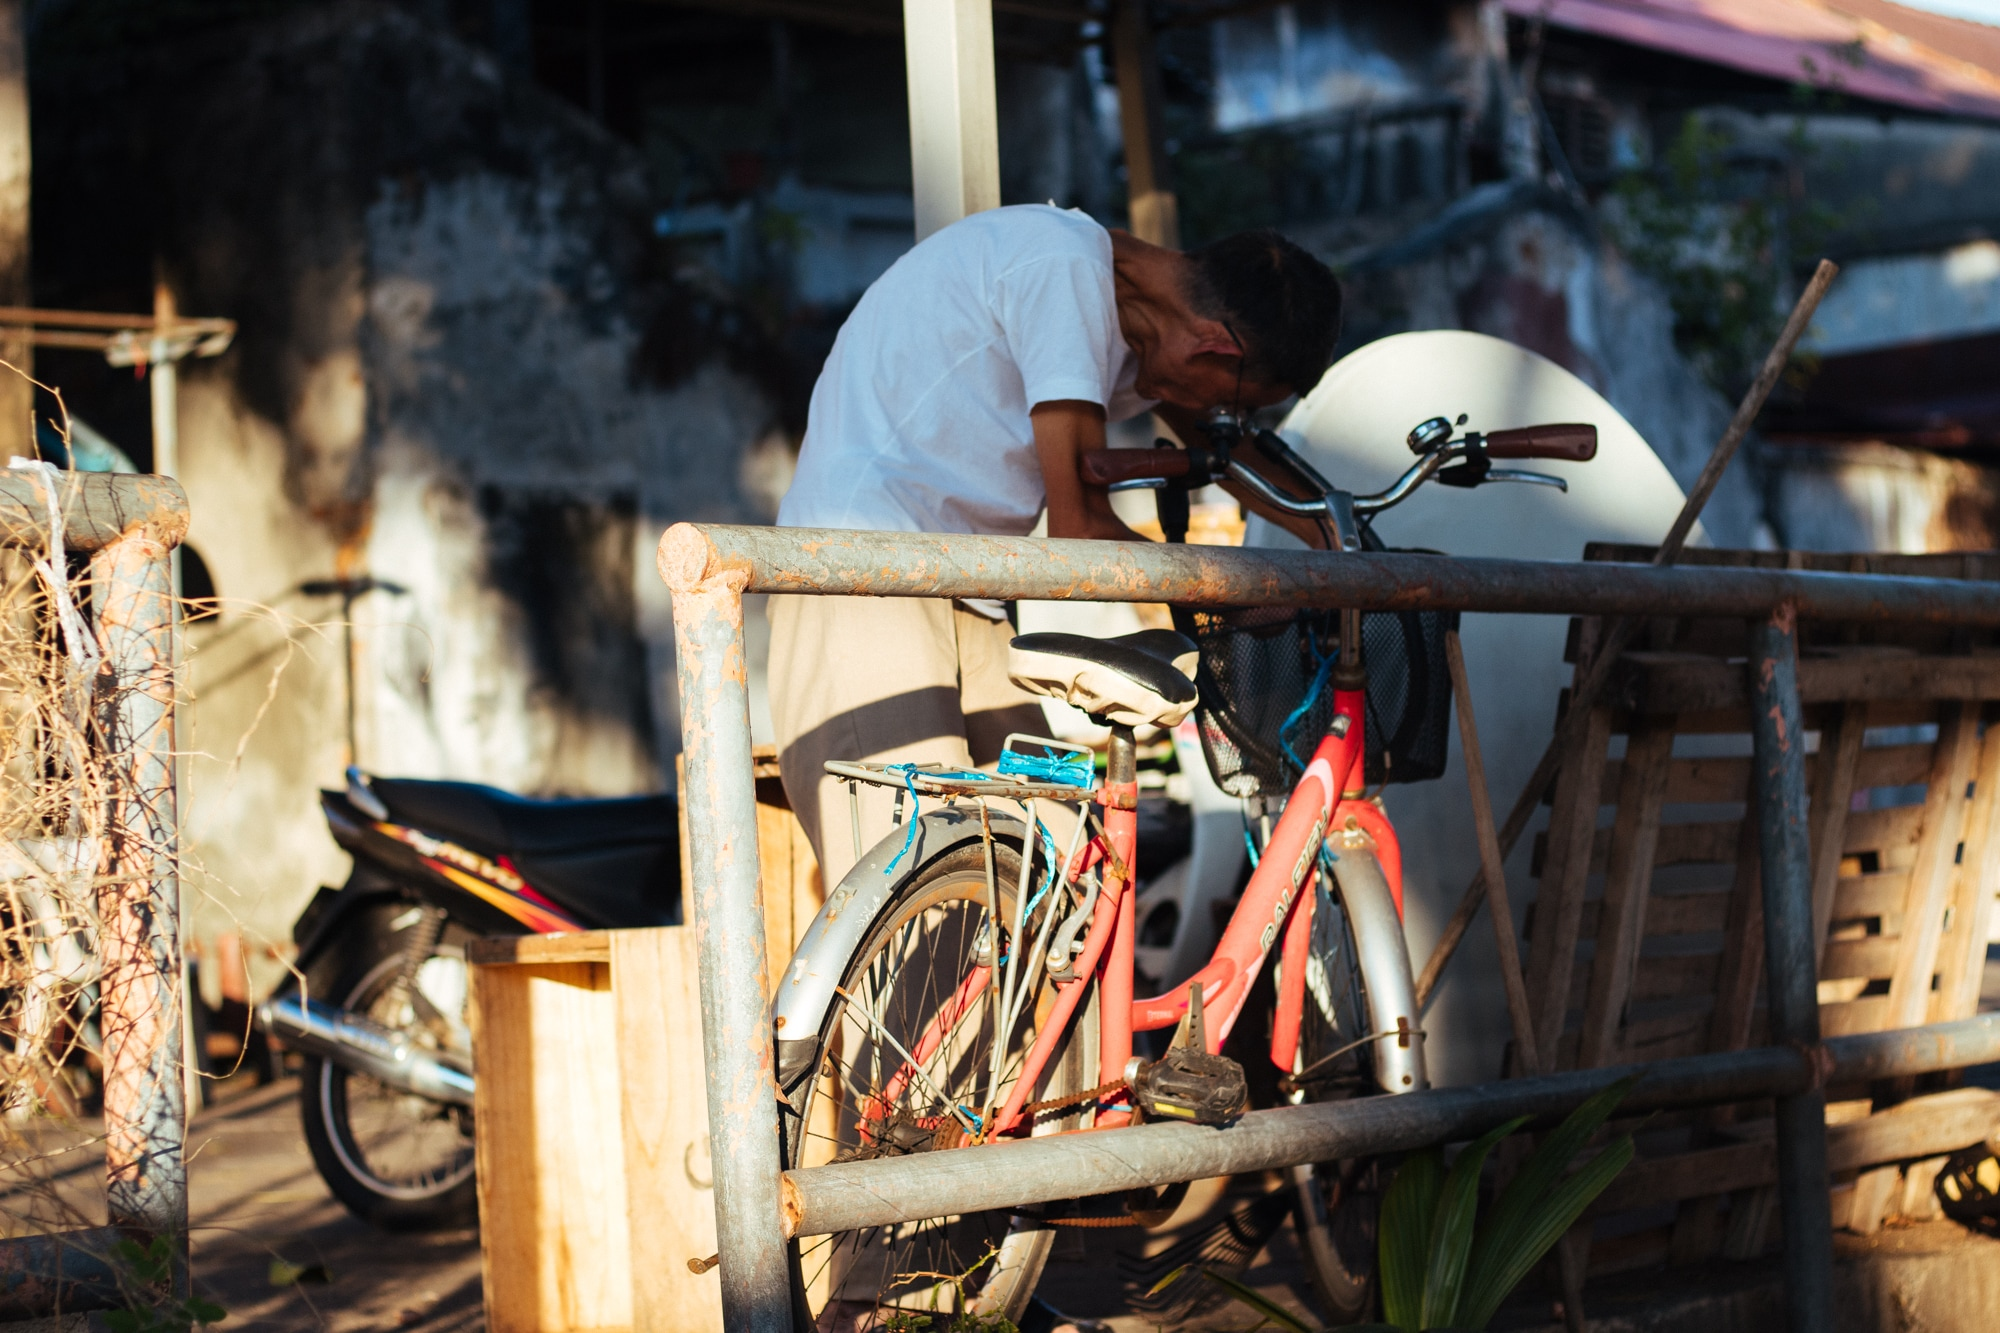 A man busy fixing his bicycle